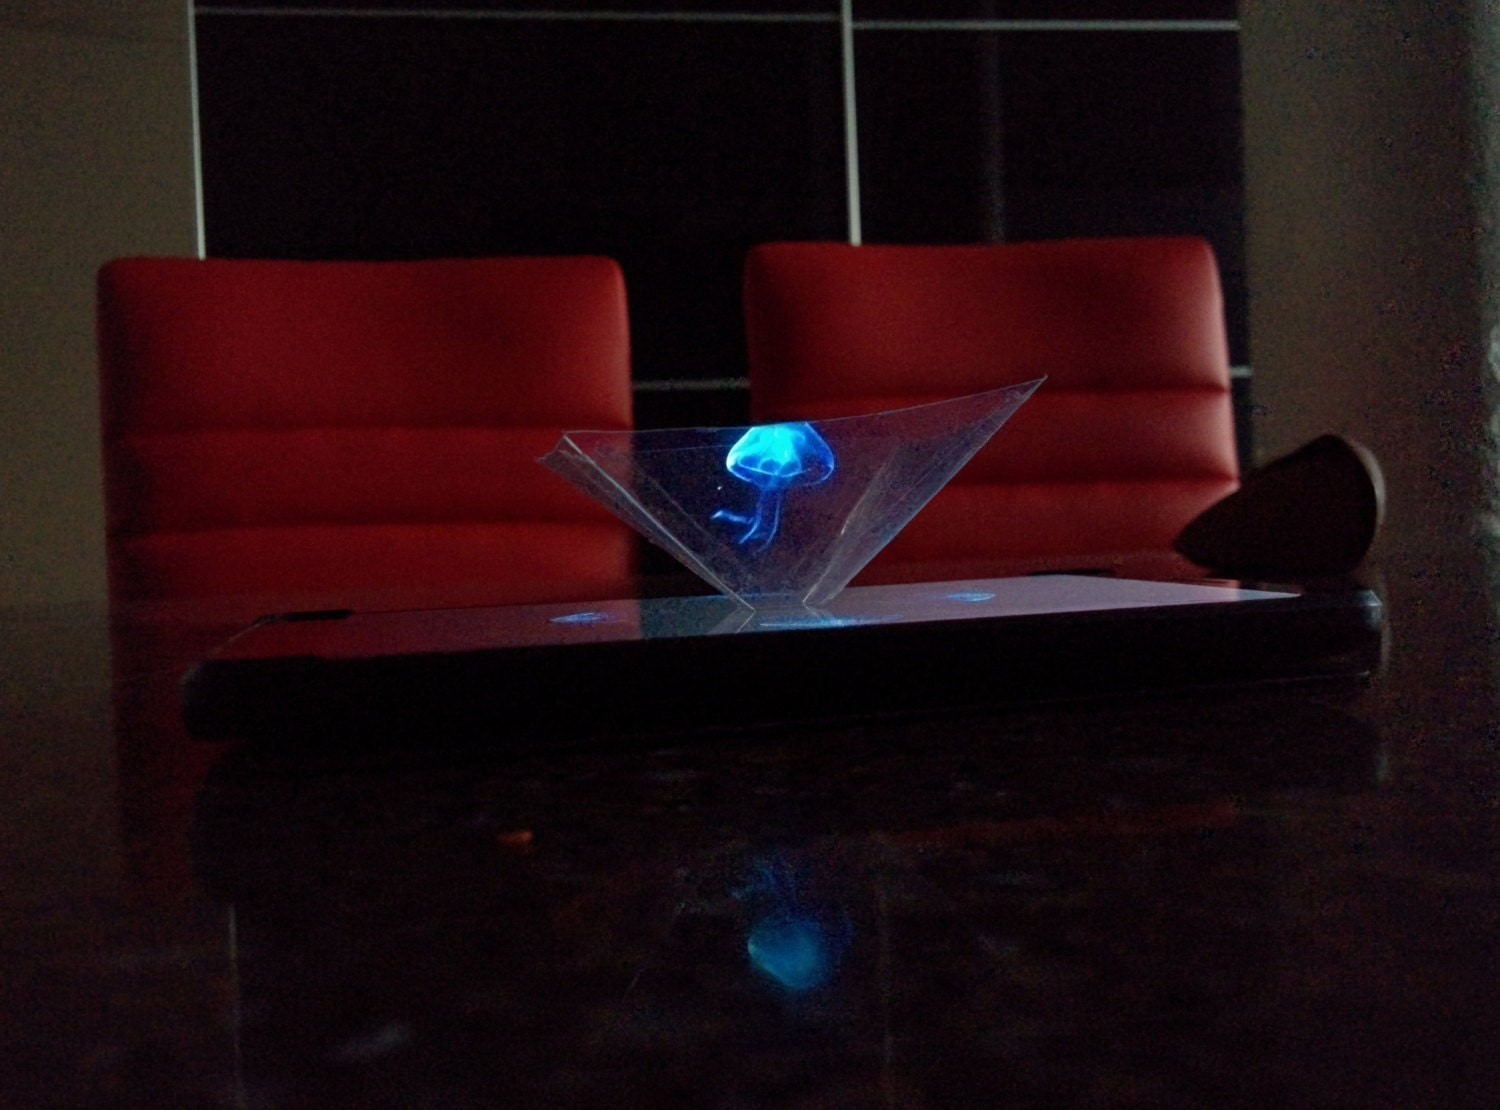 3d iphone holographic projector by cellphonehologram on etsy for Projector that works with iphone